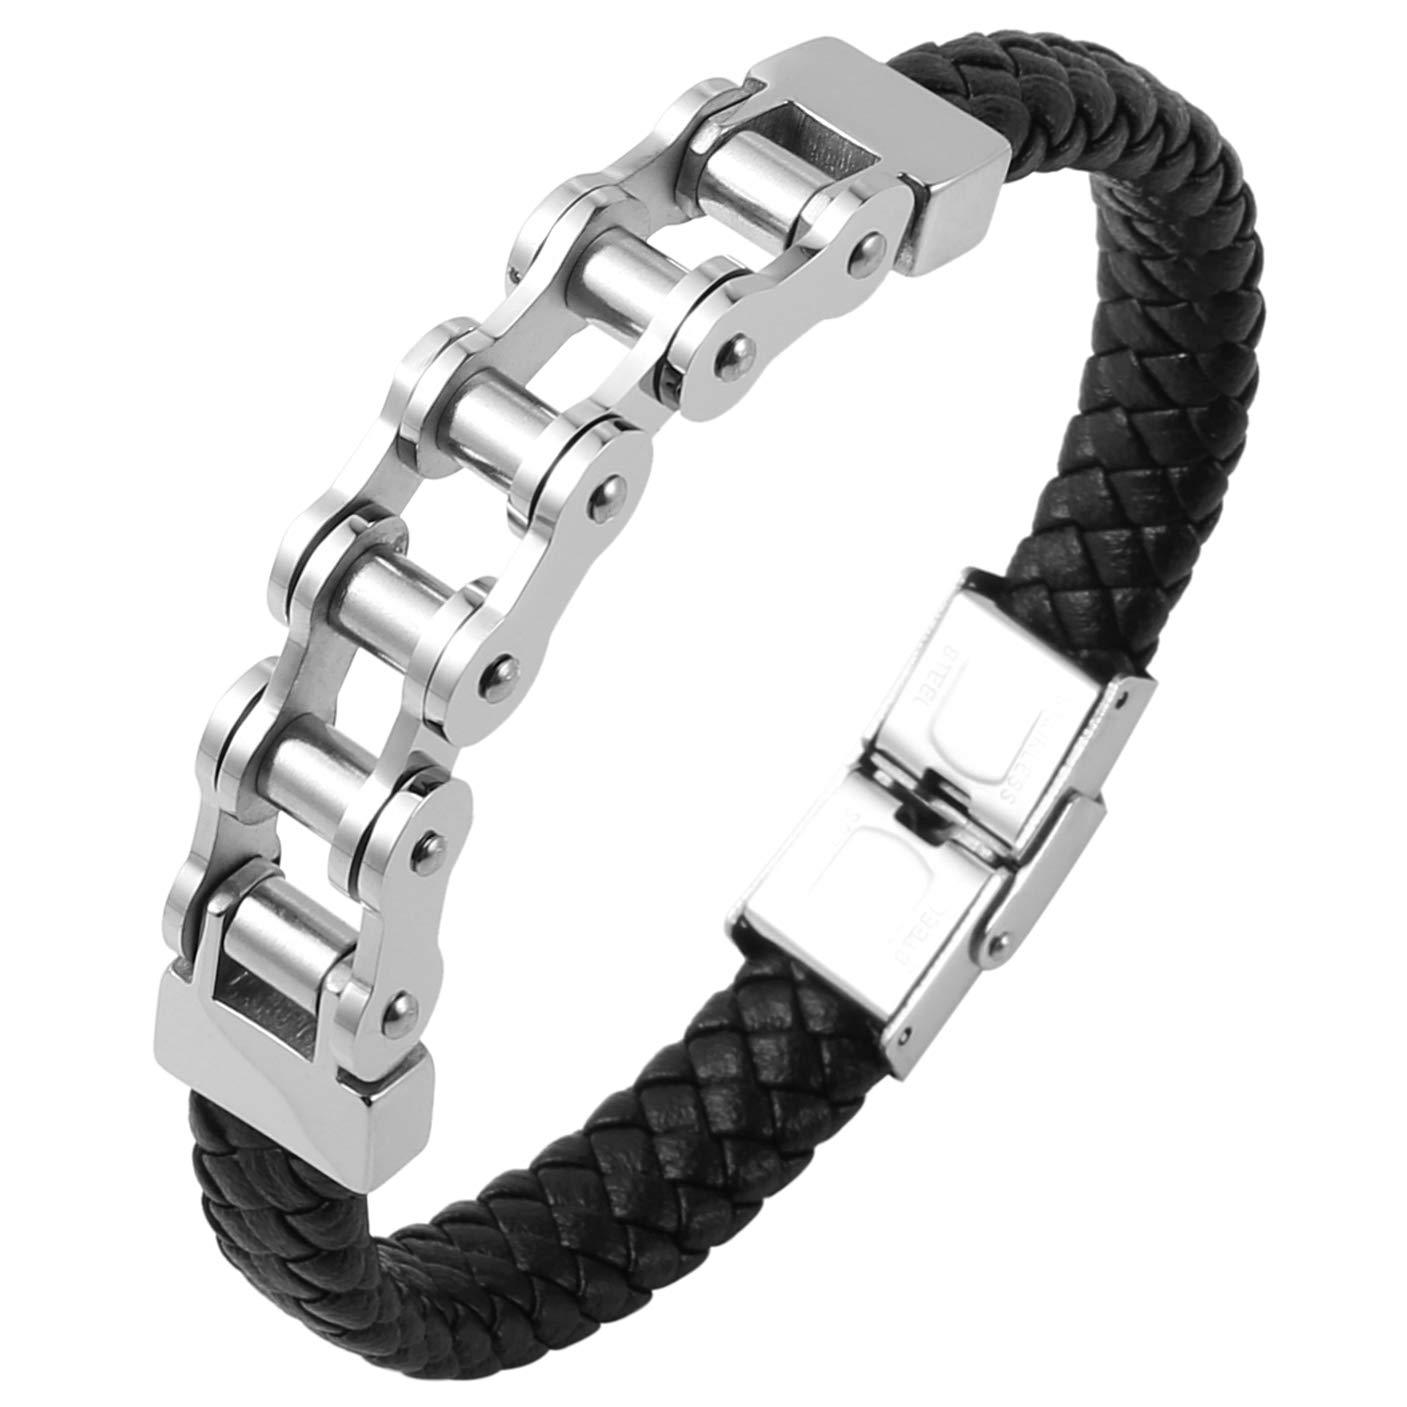 HZMAN Genuine Leather Bracelet Stainless Steel Bicycle Chain Punk Biker Mens Bracelet, 9 Inches